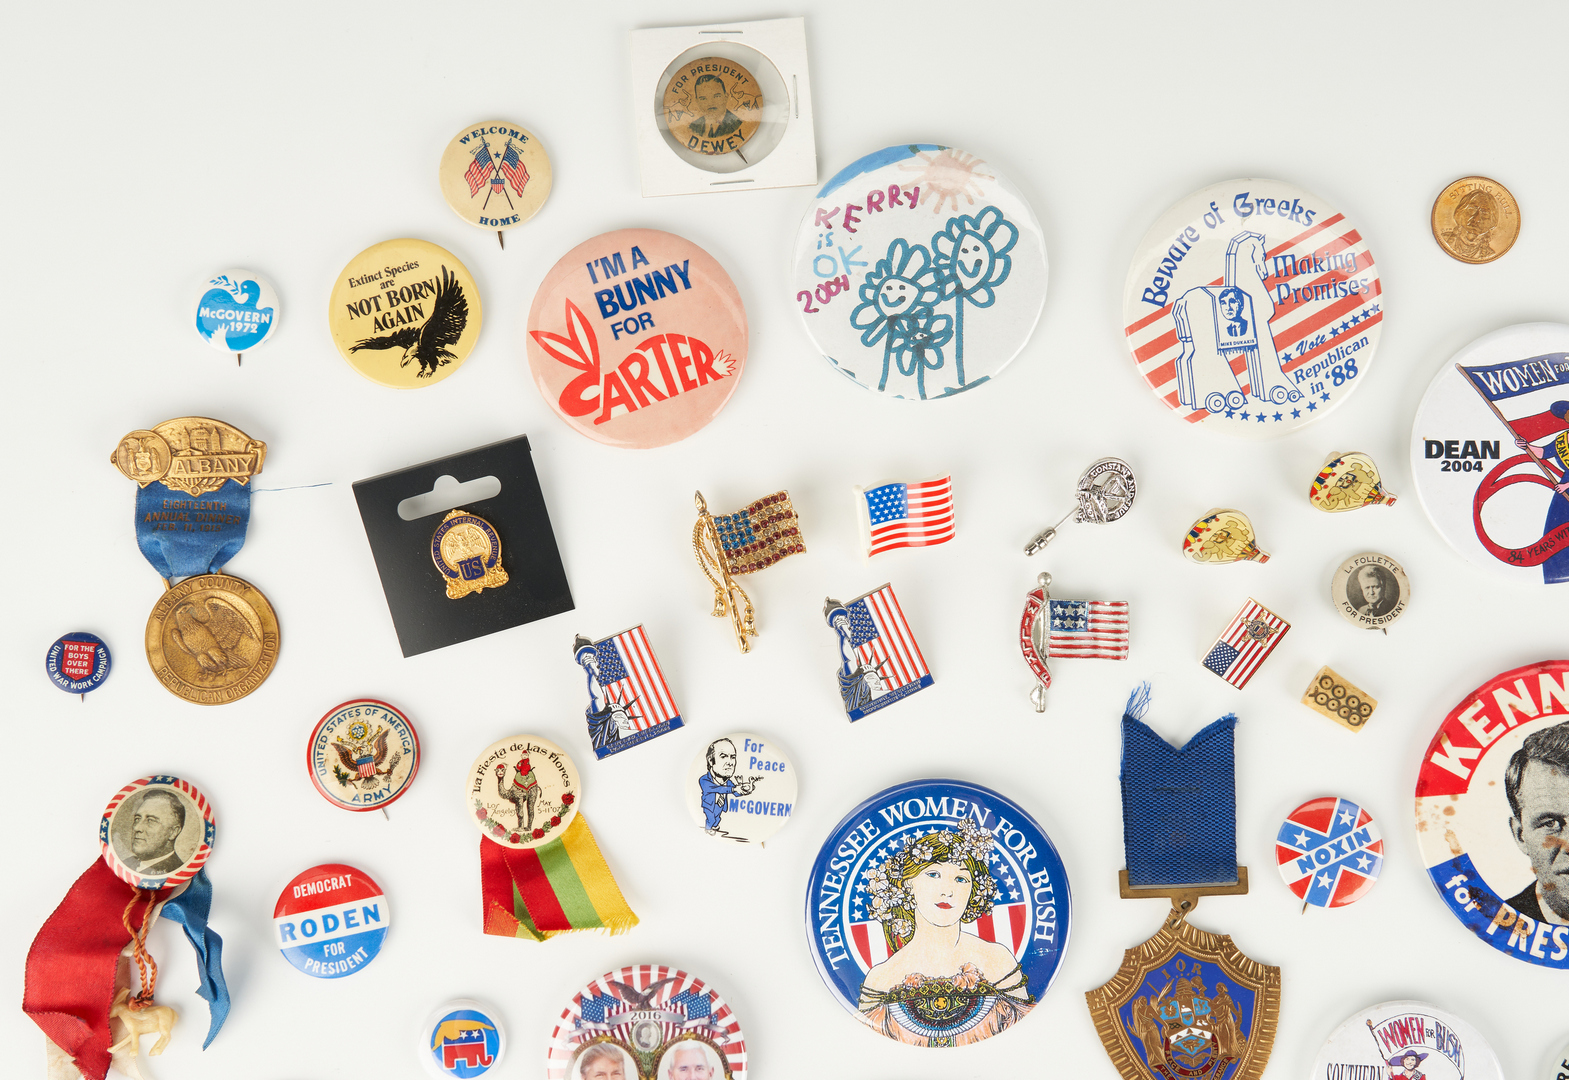 Lot 1026: 79 Political Ephemera Items, incl. Presidential Campaign Buttons